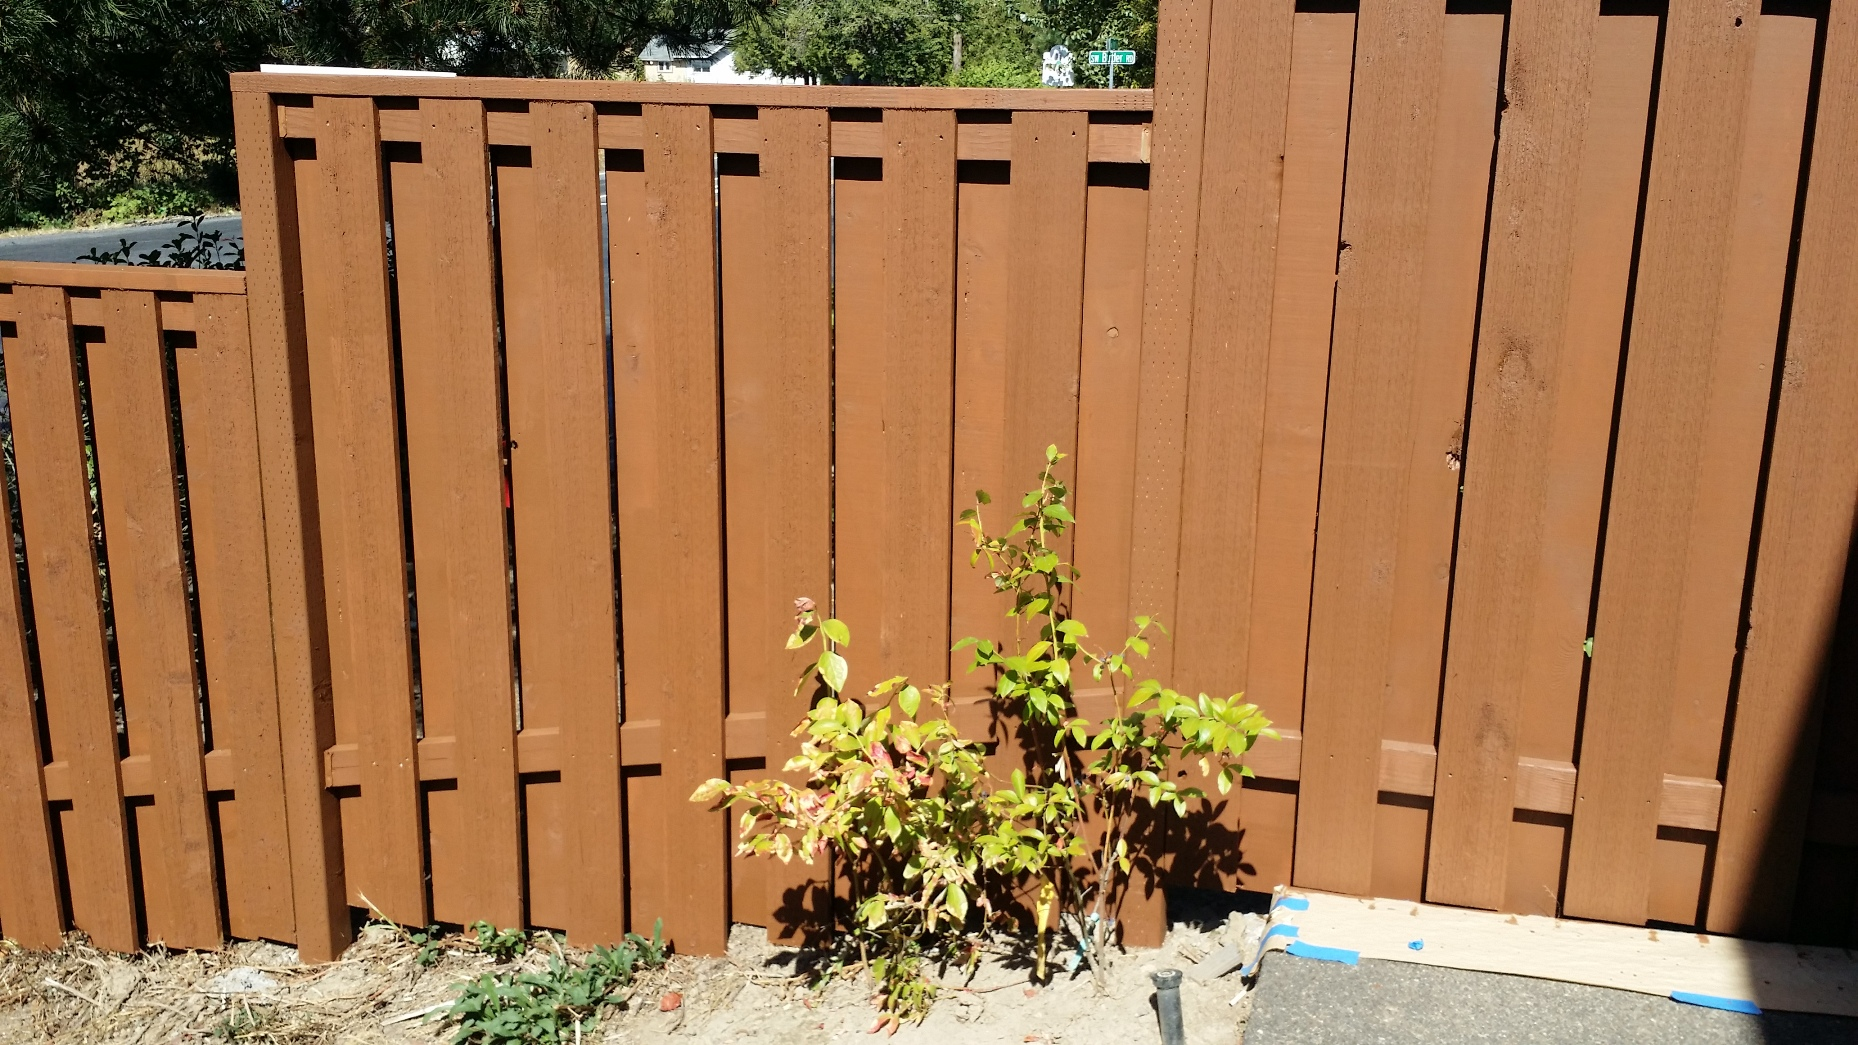 Aurora fence repair quote, Aurora fence contractor, Aurora fencing company, Fence Repair Aurora, Aurora fencing repair